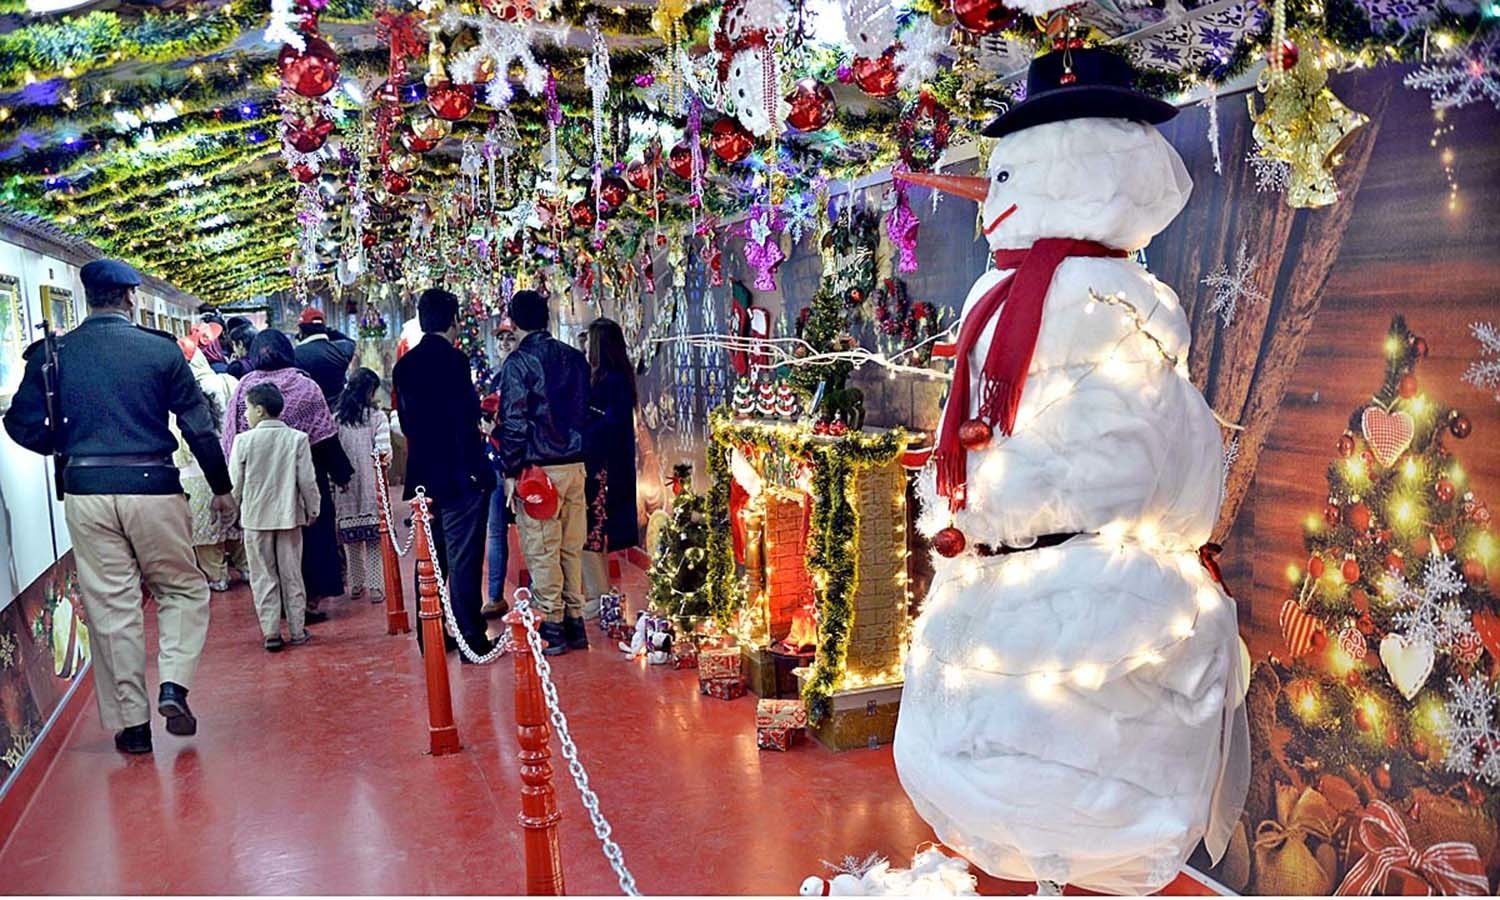 People viewing the first ever special Christmas train decorated with models of Santa Claus and other Christmas objects to mark the Christmas celebrations at railway station.─APP